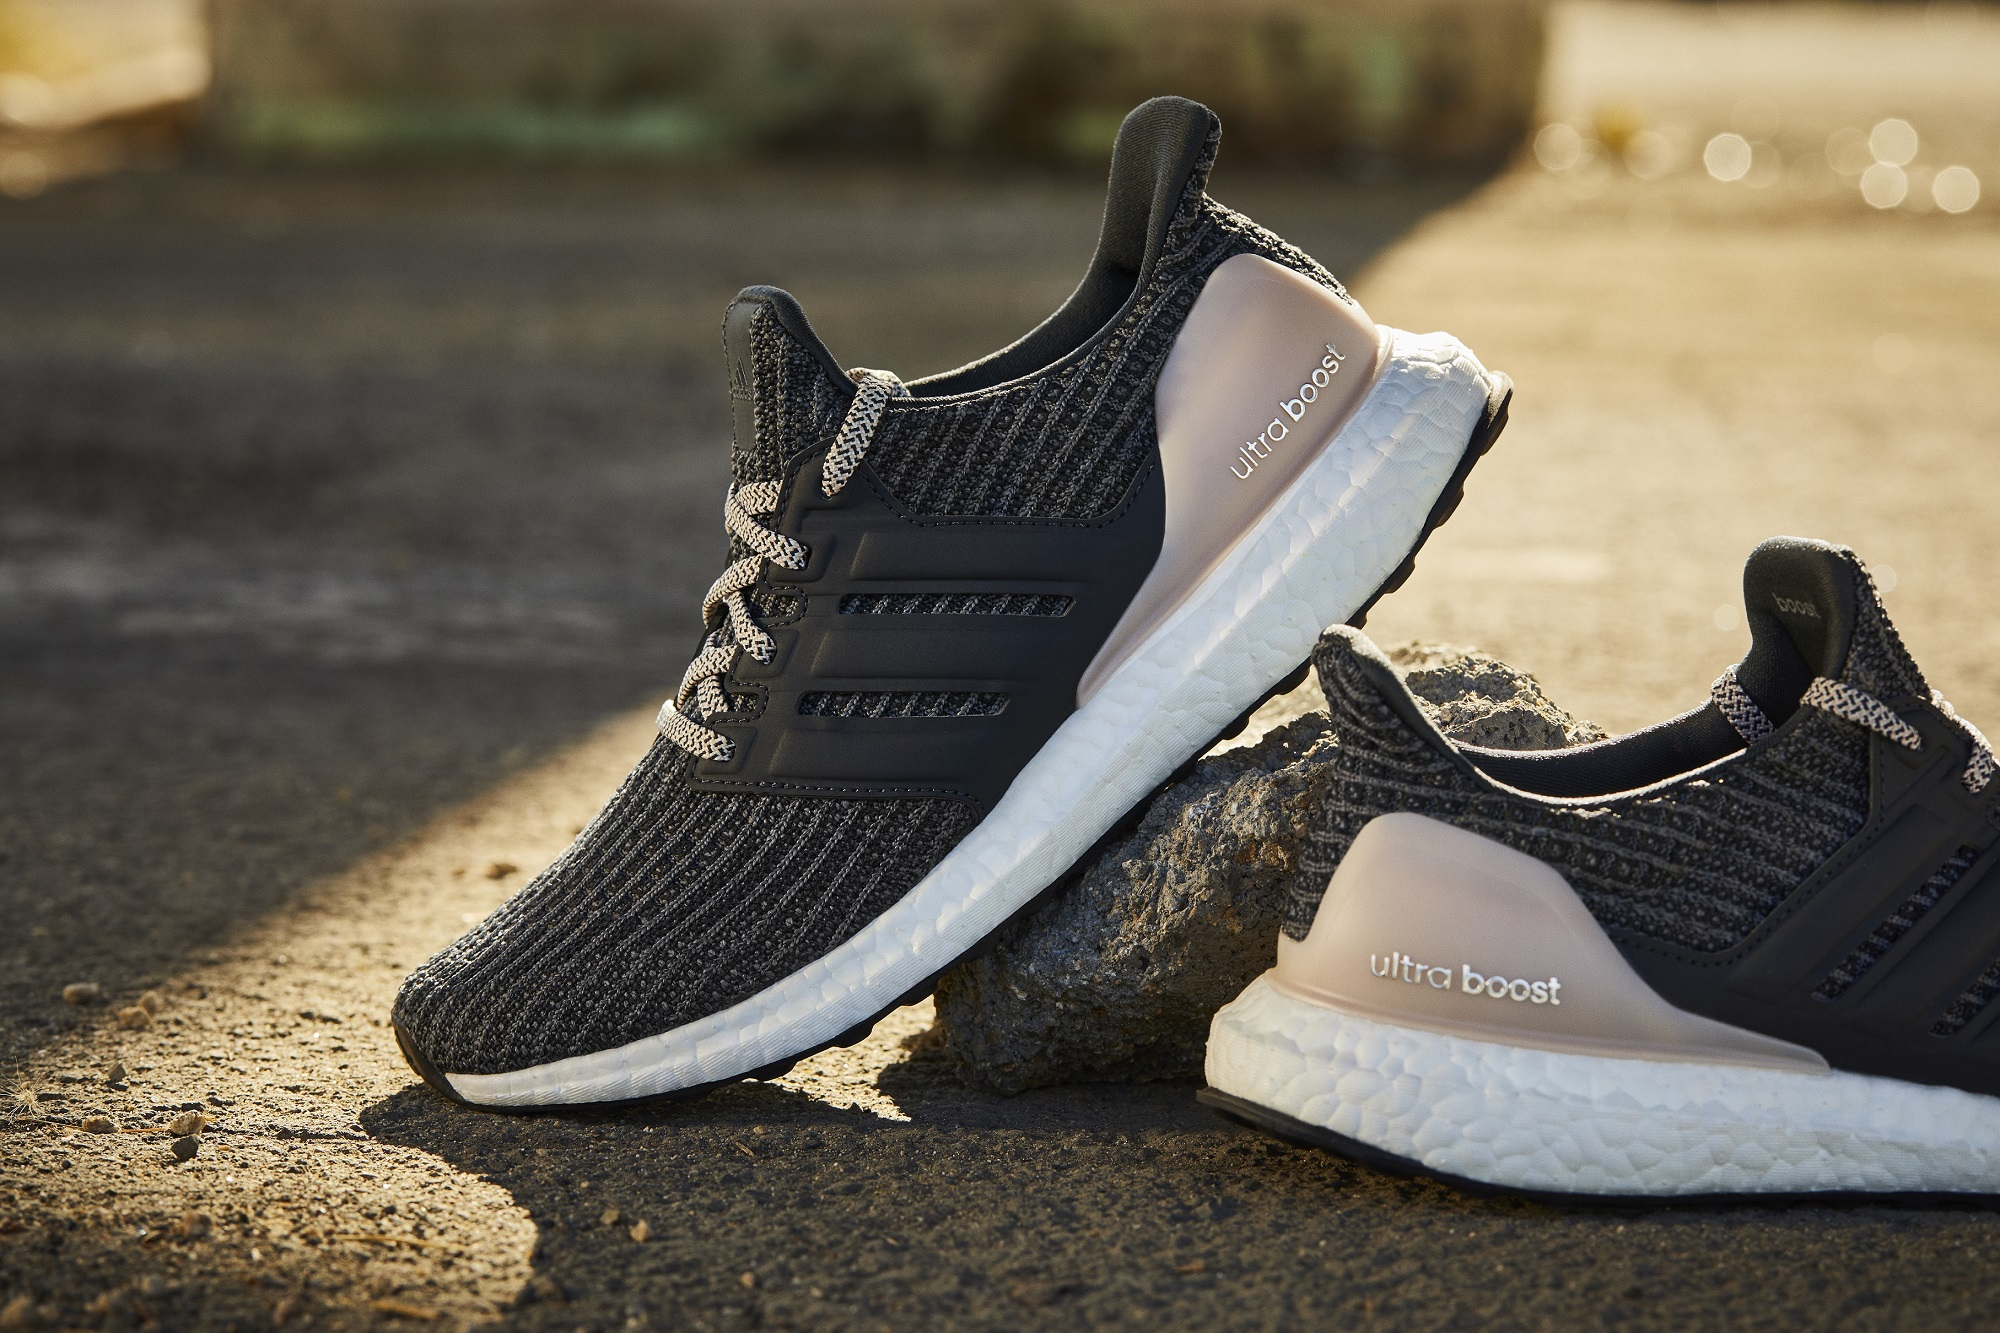 694924eb43ddc adidas Unveils The New And Improved UltraBoost And UltraBoost X - MASSES